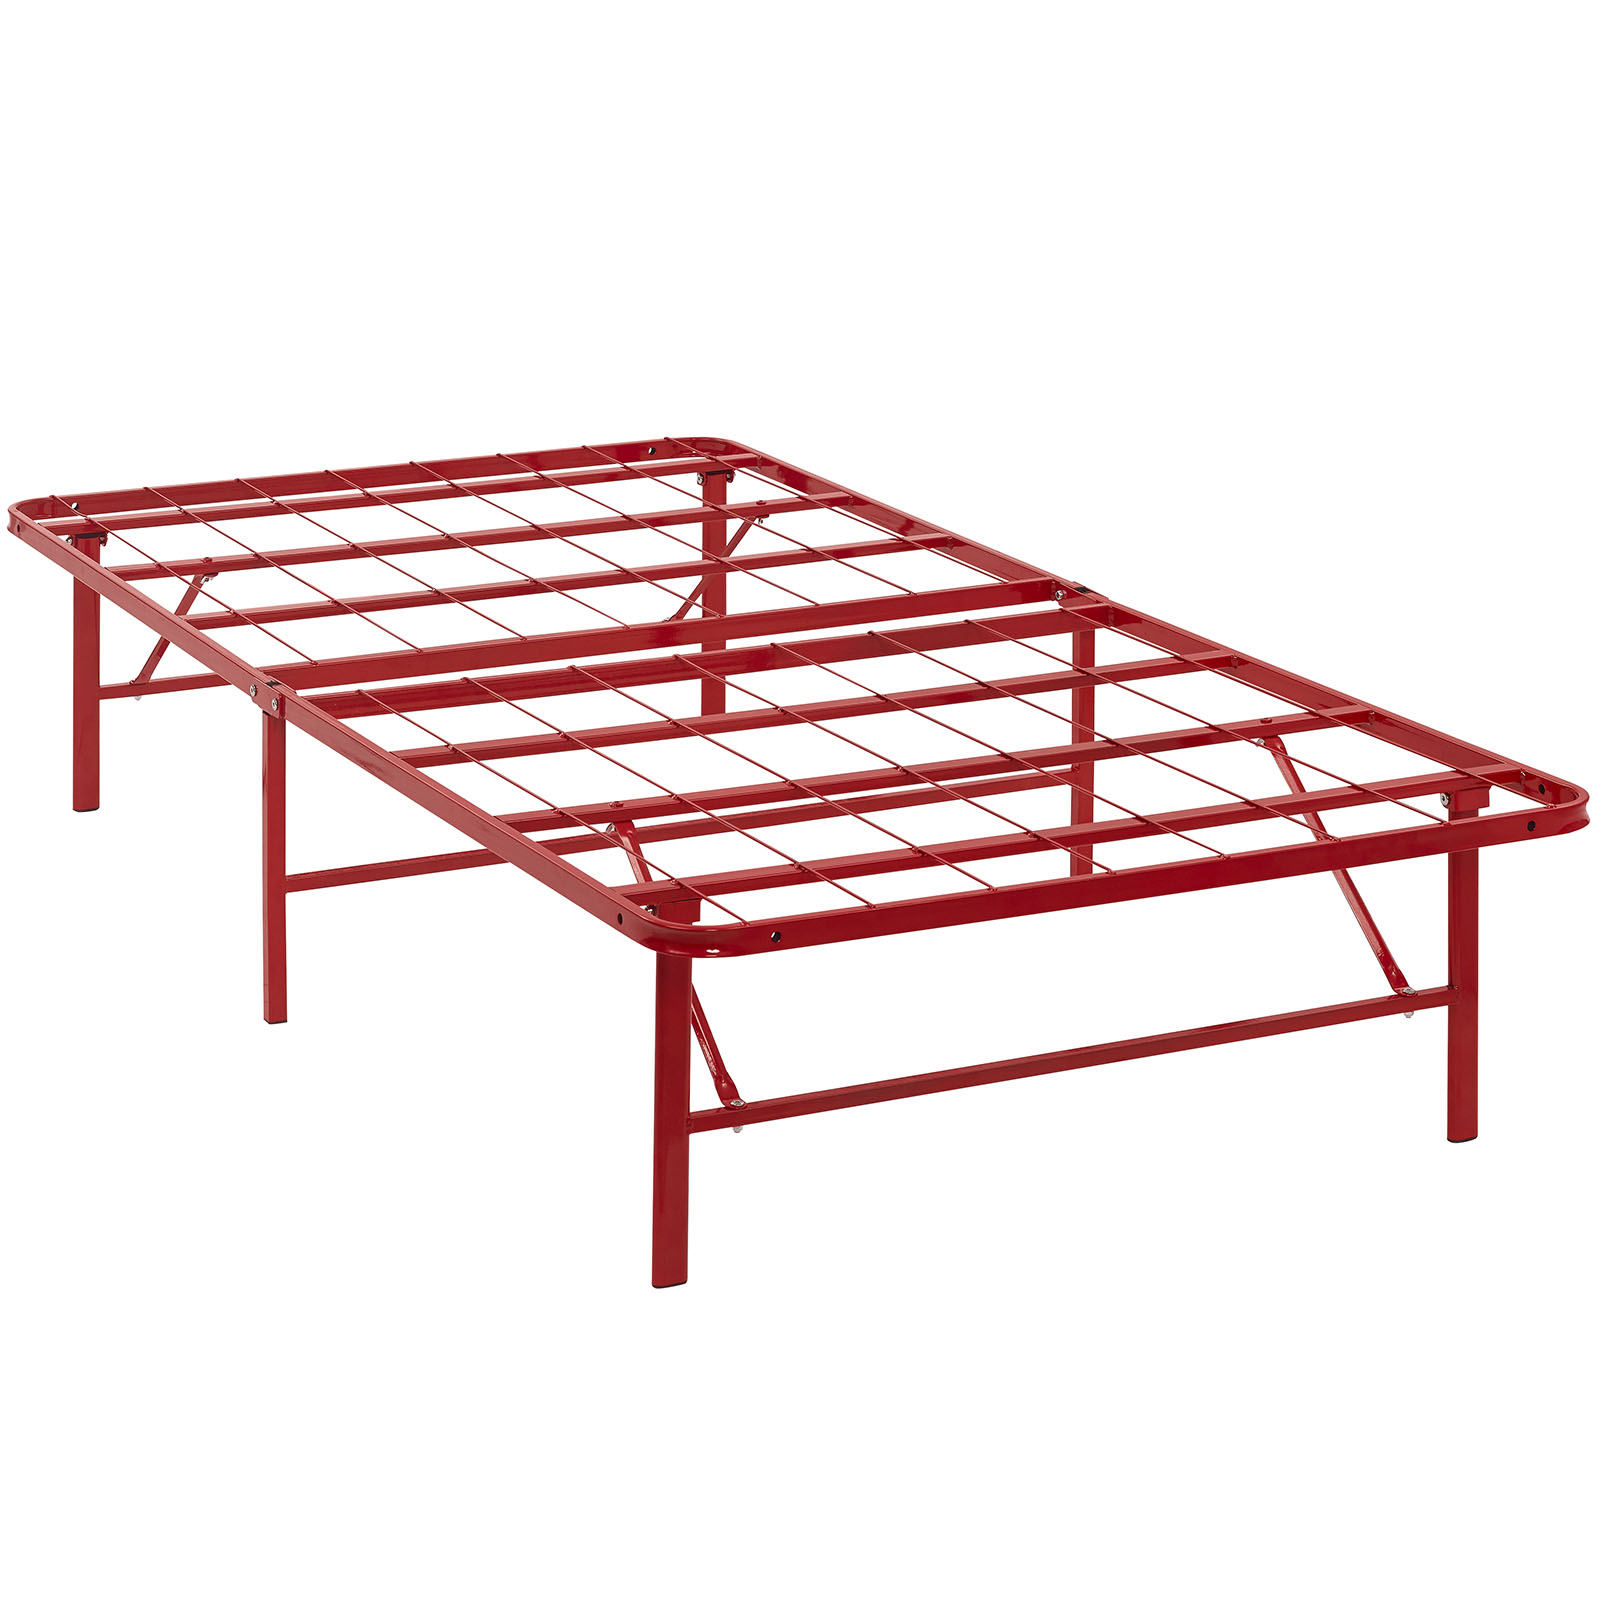 Modern Contemporary Urban Design Bedroom Twin Size Platform Bed Frame, Red, Metal Steel